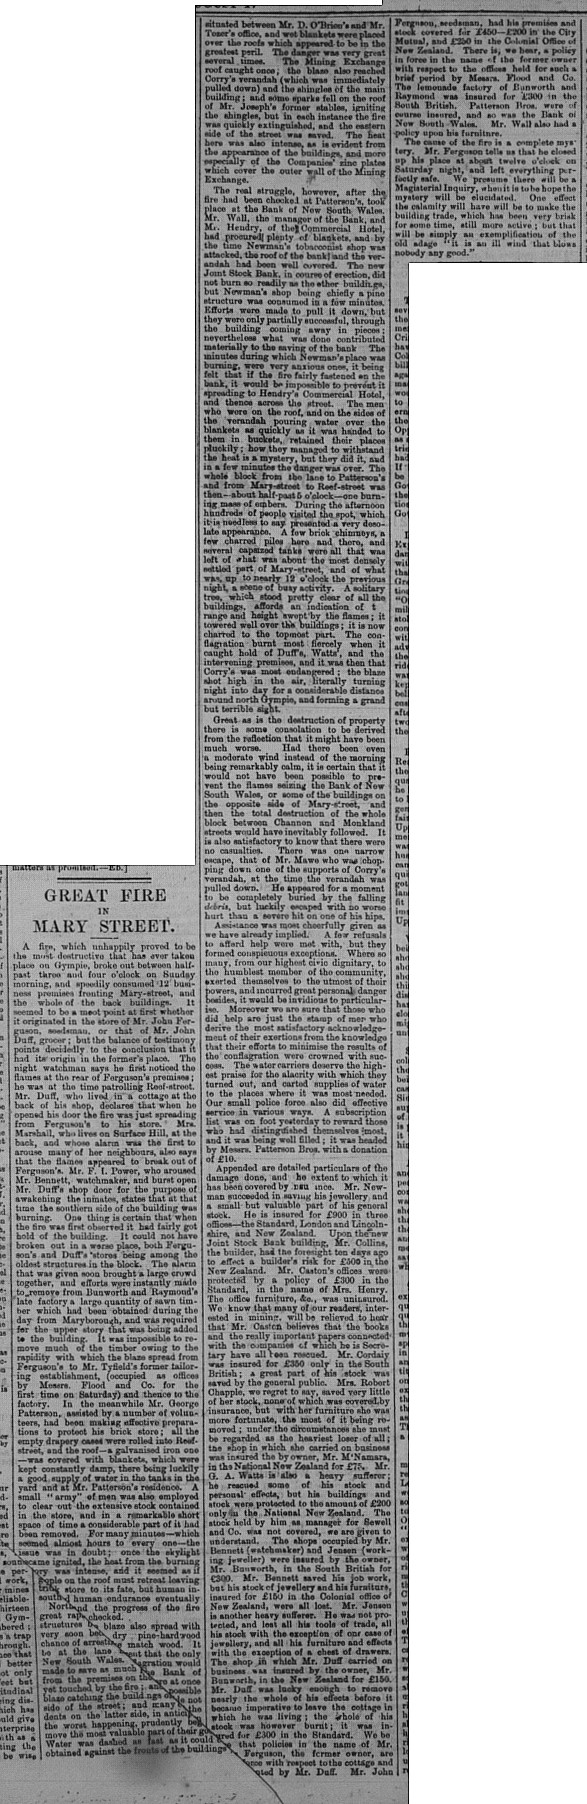 Gympie Times, Wednesday, August 17, 1881 p. 3 Great fire in Mary St